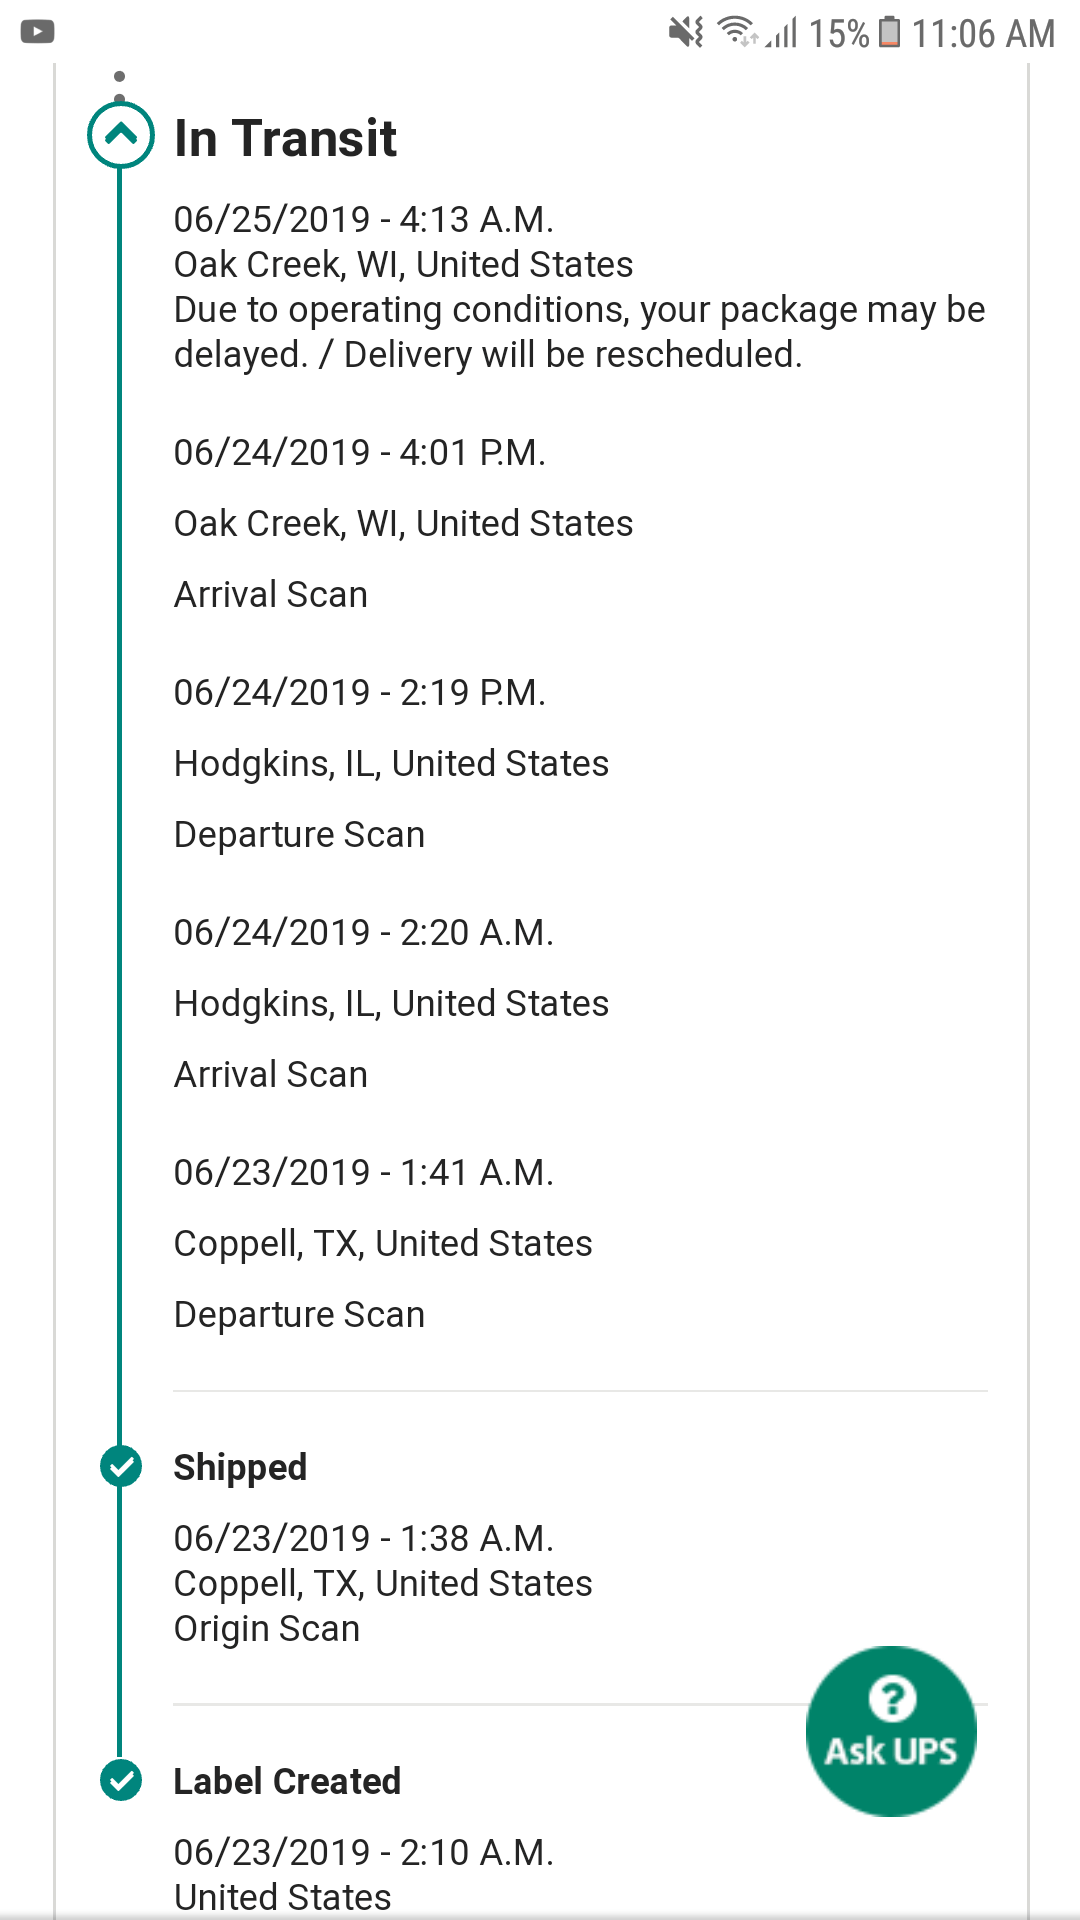 it mean when a package is delayed due